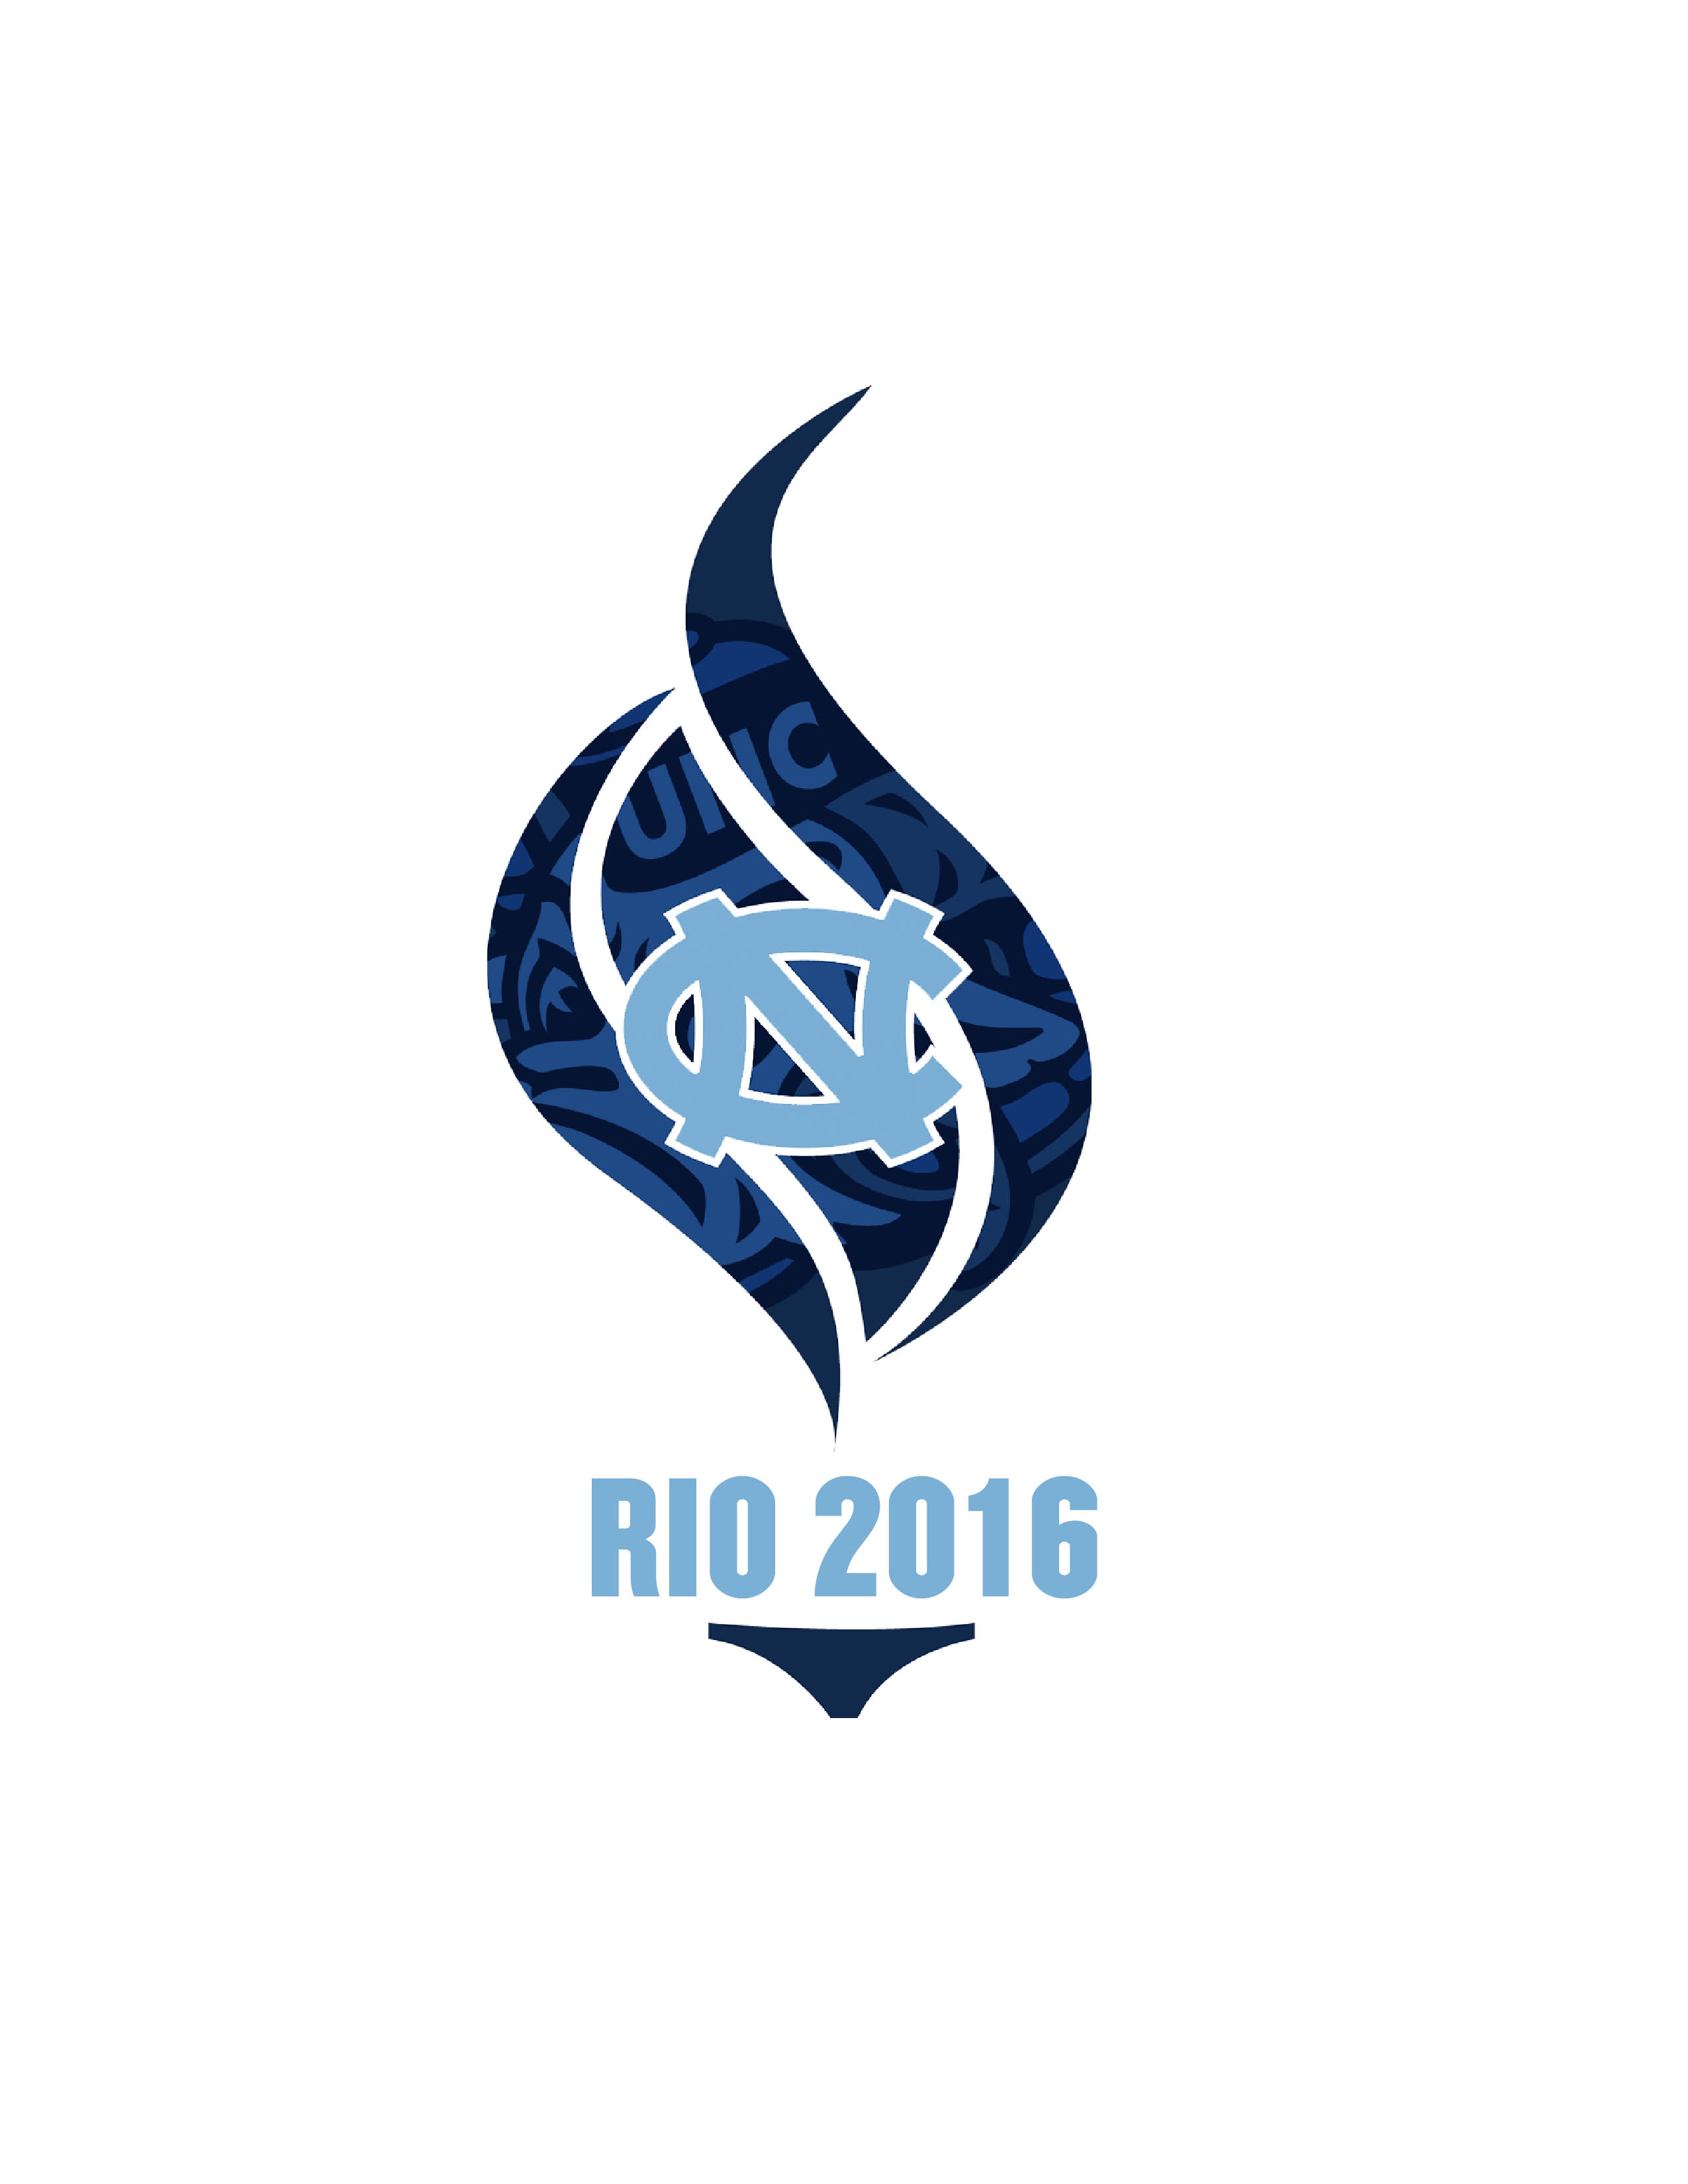 UNC Athletes in the Olympics<div style='clear:both;width:100%;height:0px;'></div><span class='desc'>Created as a logo to represent UNC athletes in the 2016 Olympics.</span>